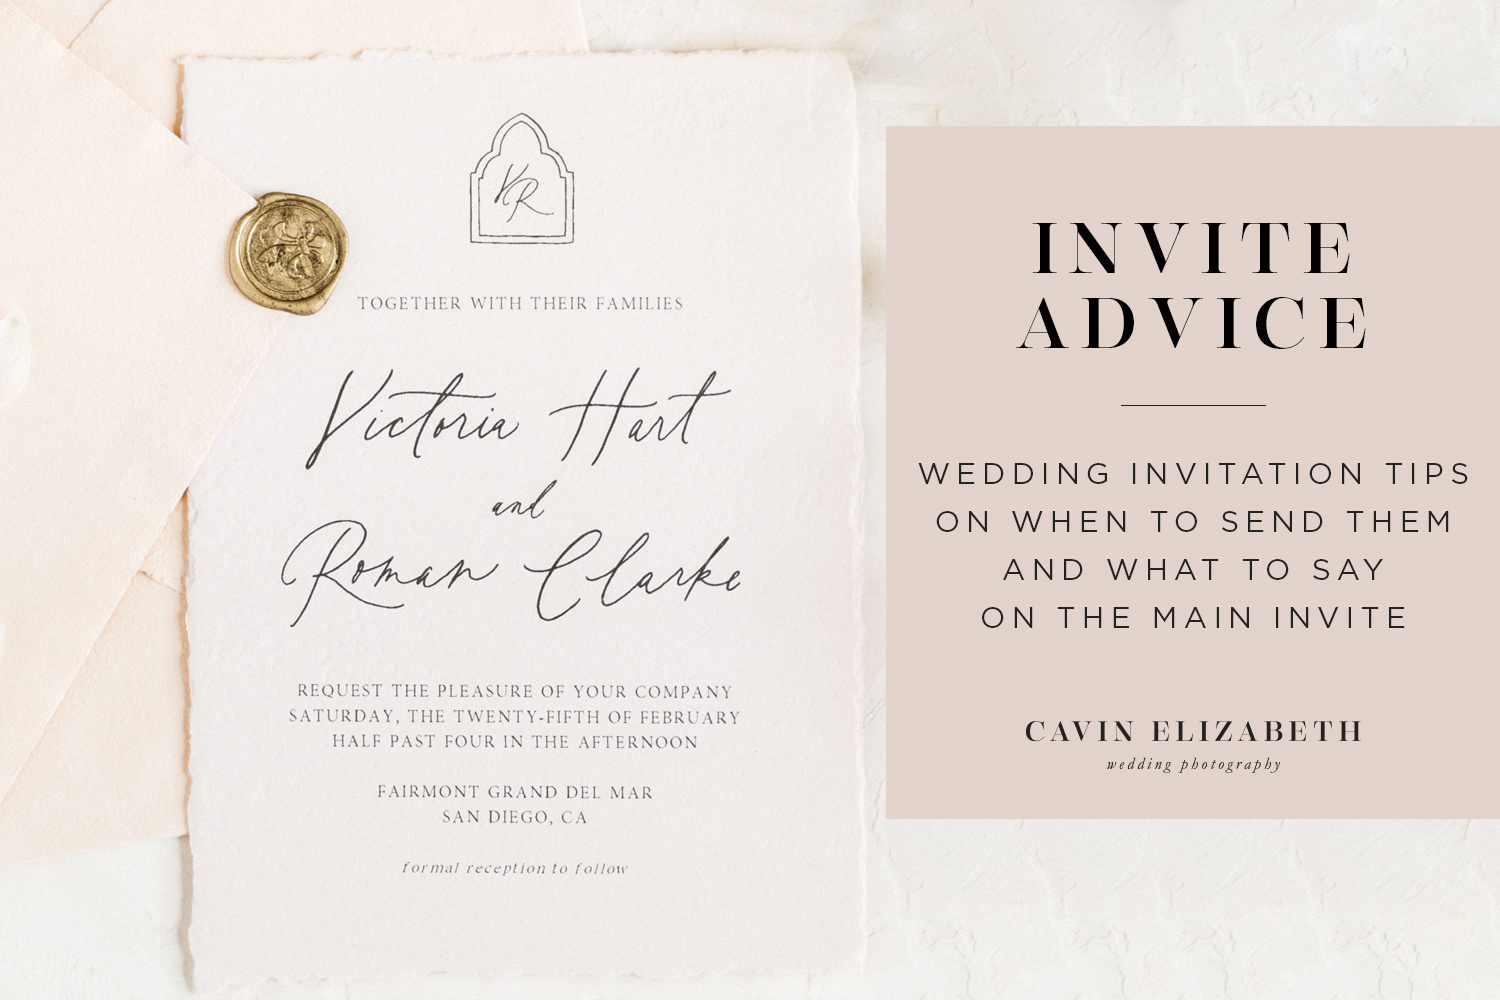 Wedding Invitation Tips + Advice on When to Send and What to Say